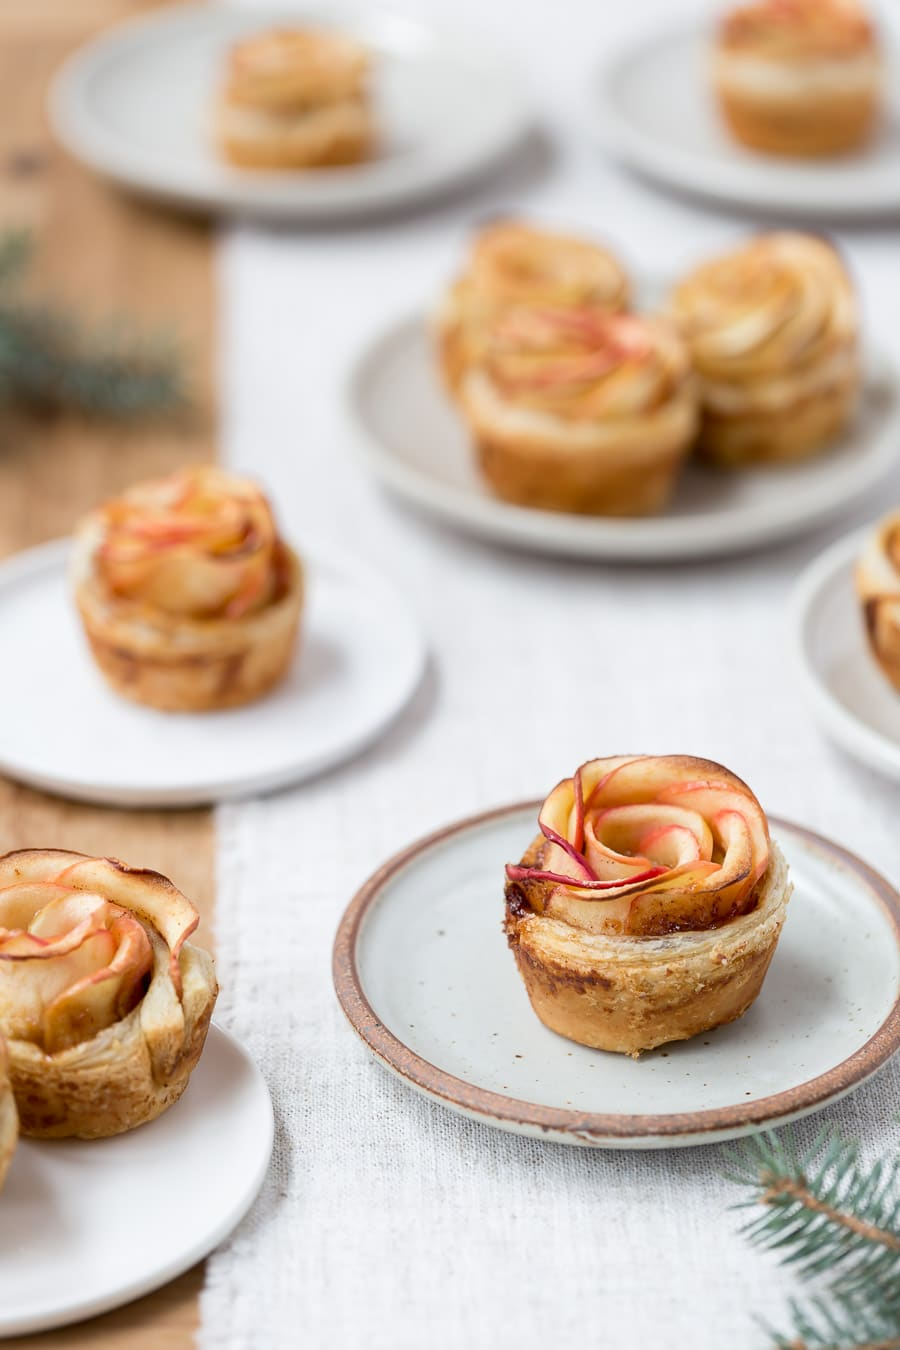 How to make apple roses - Freshly baked apple roses are photographed on small plates.